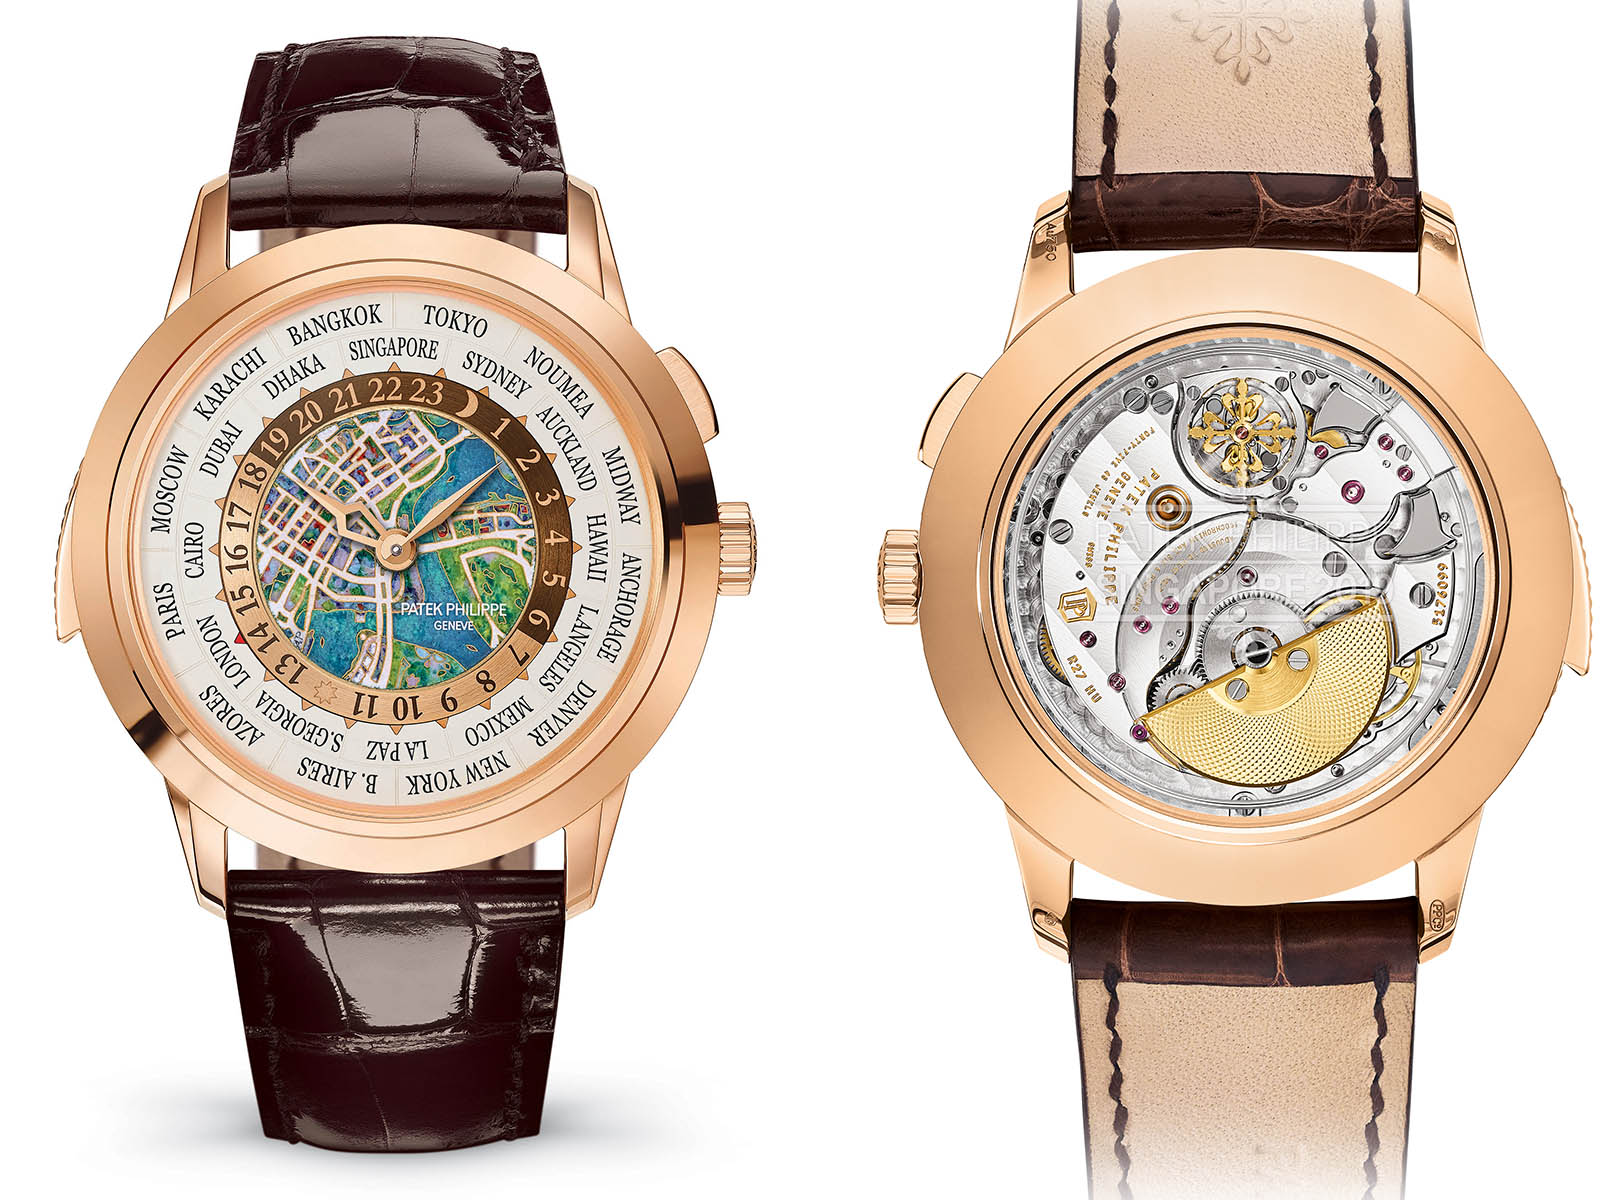 5531r-013-patek-philippe-world-time-minute-repeater-1.jpg